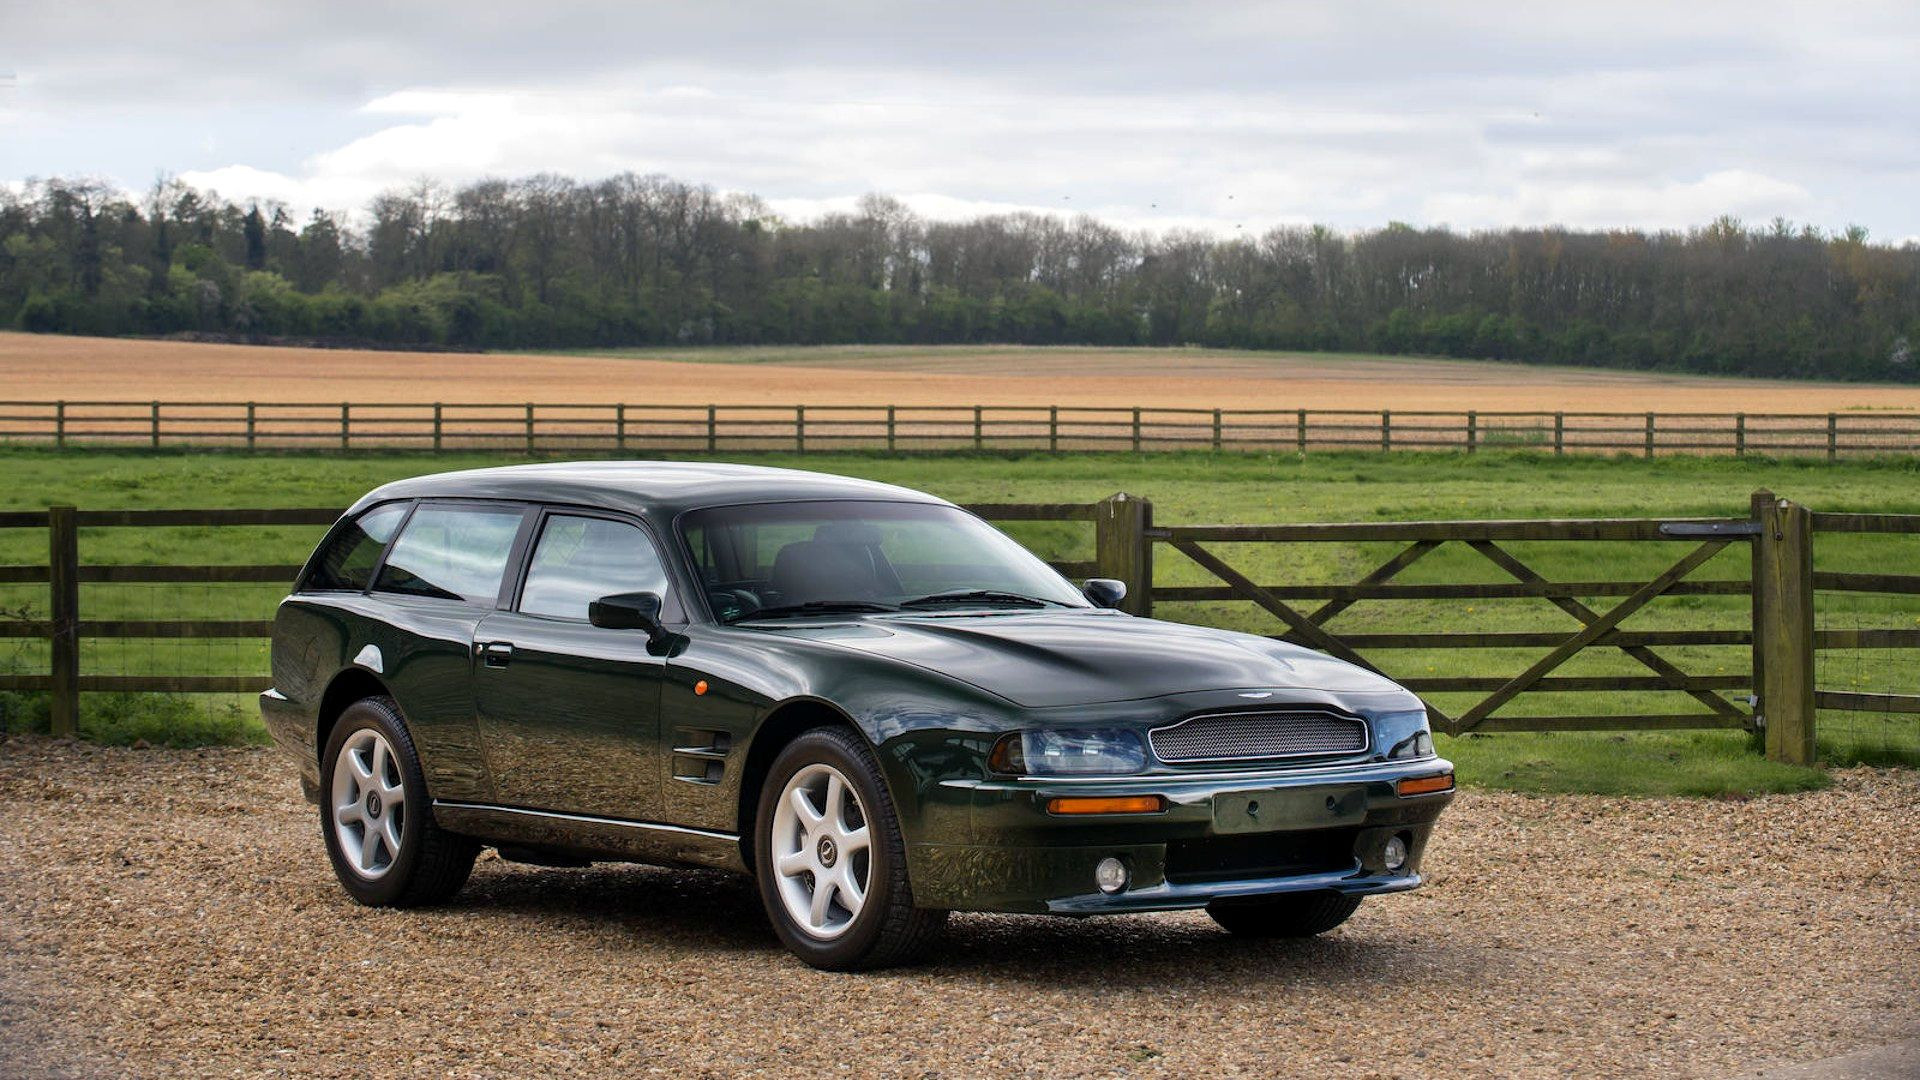 1996-aston-martin-v8-sportsman-estate